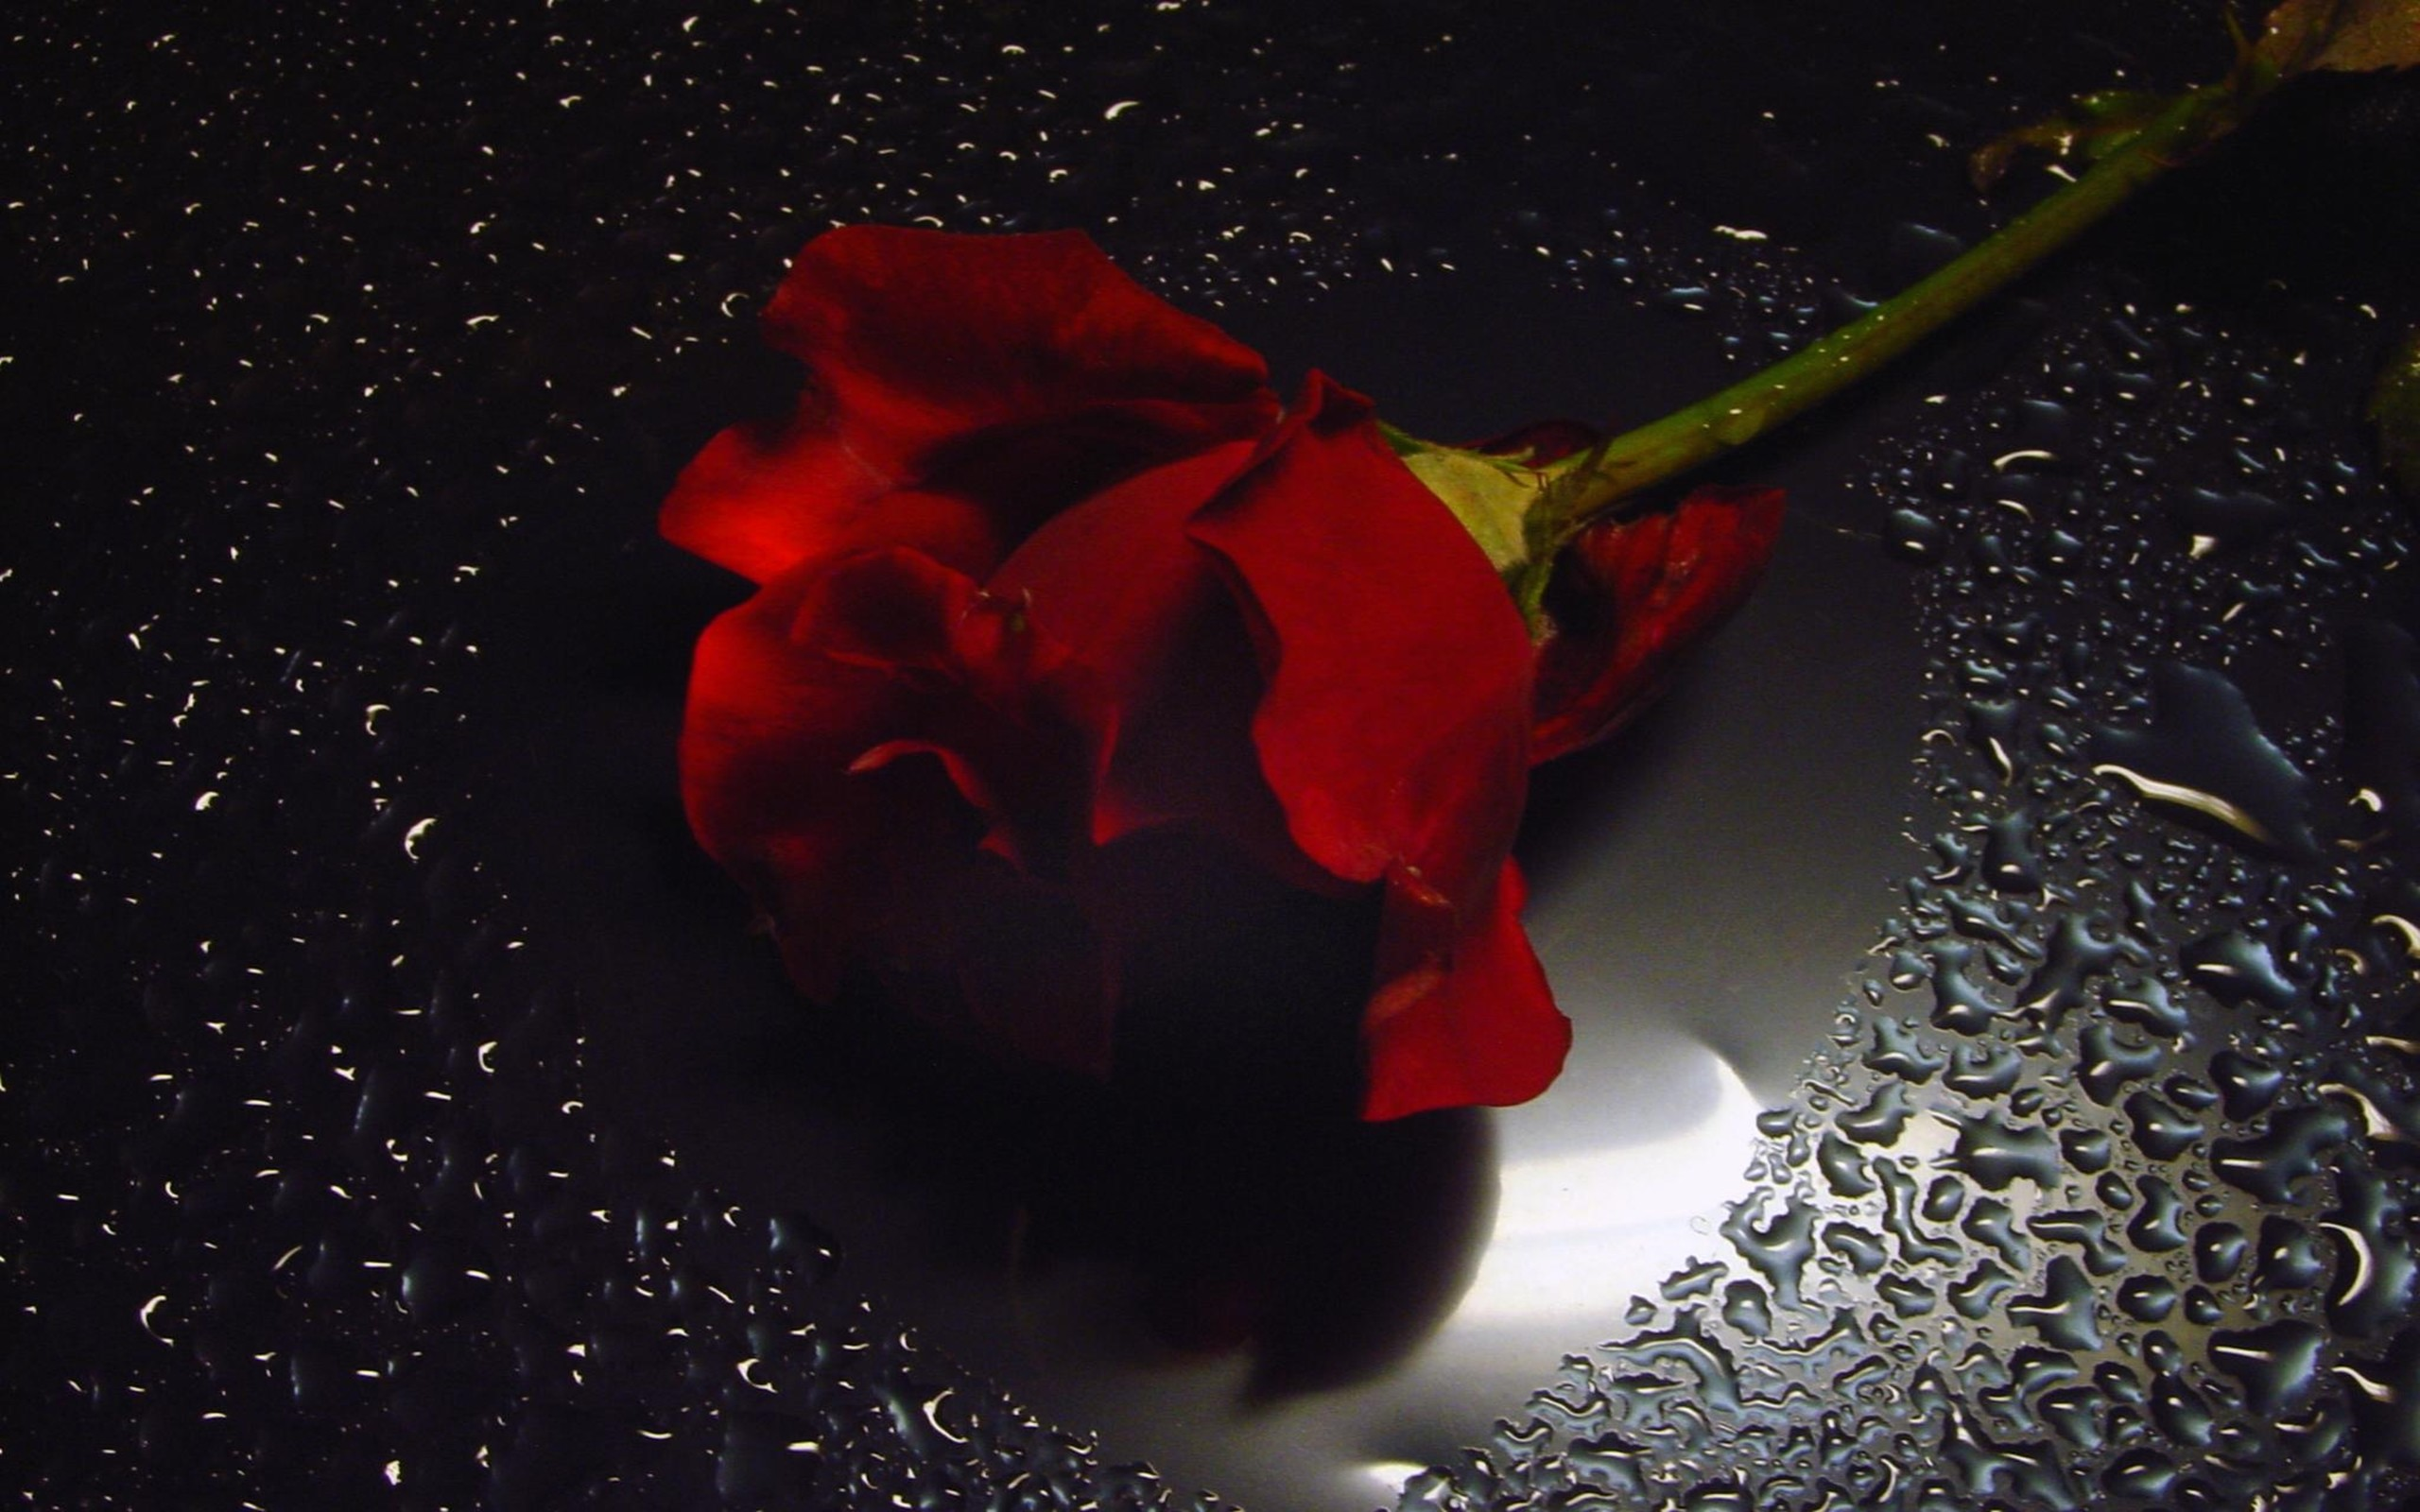 Raindrops Falling On Flowers Wallpaper Red Rose On Black Background 183 ①